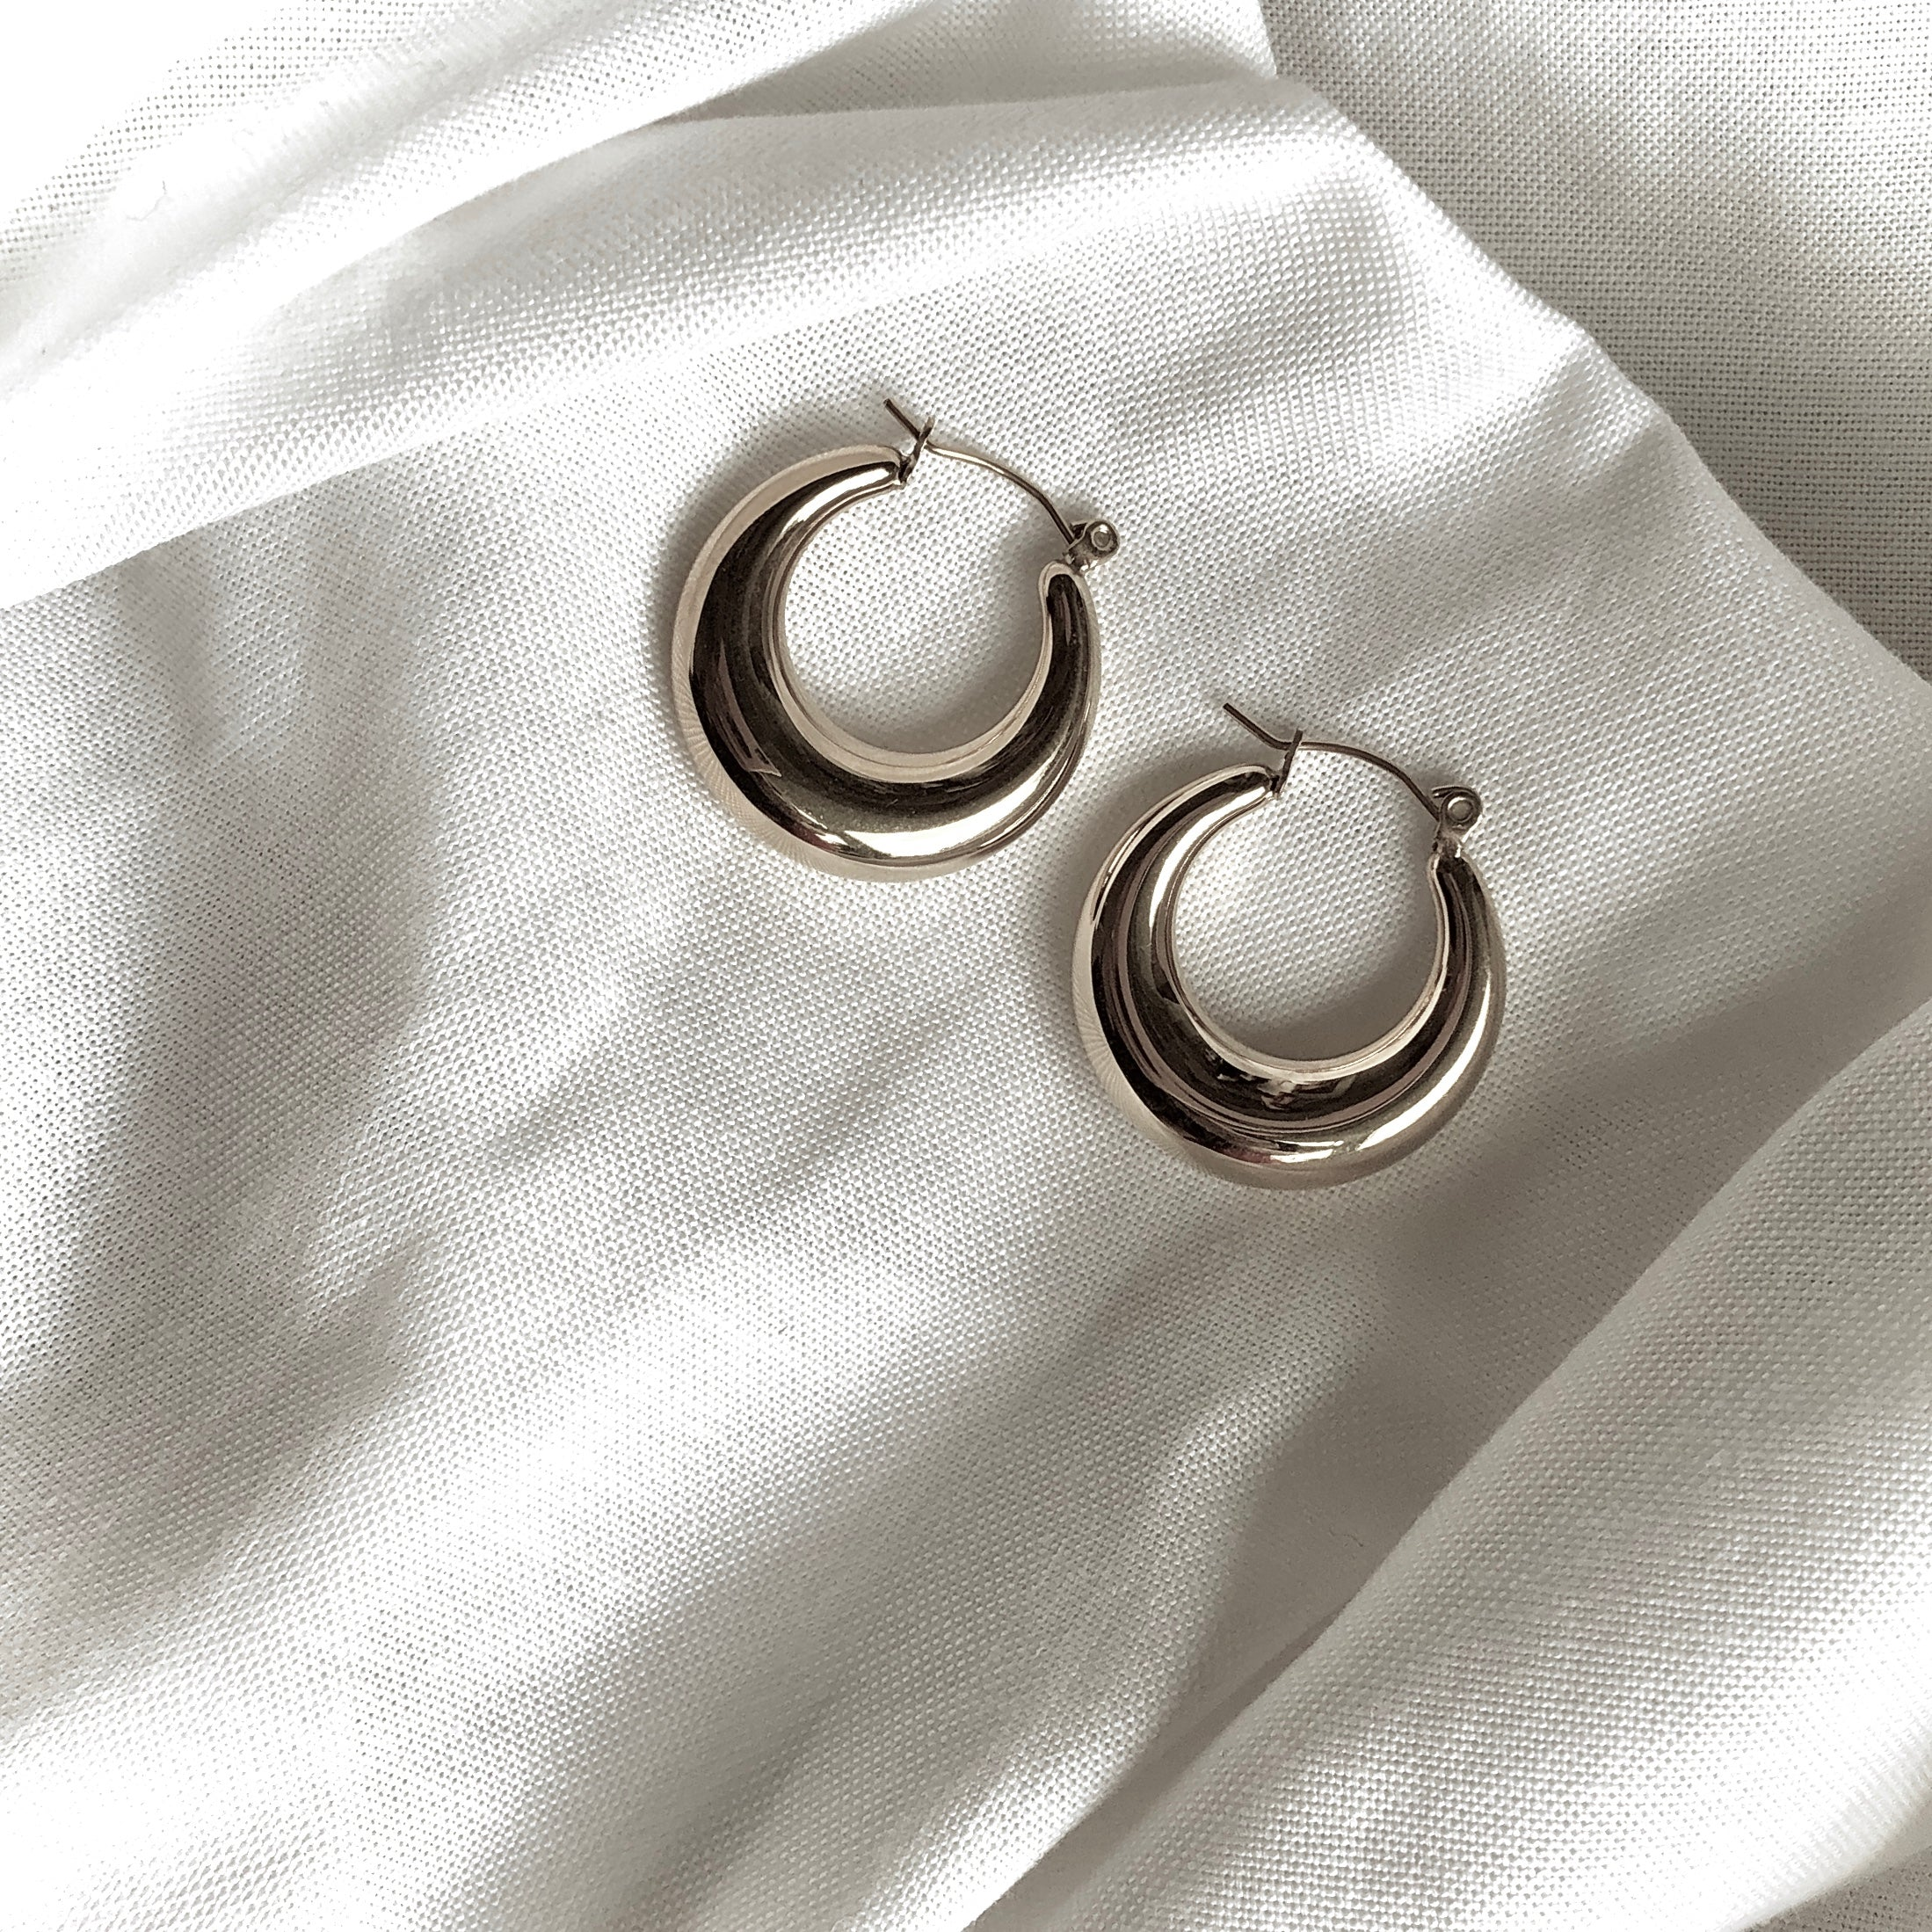 Crescent Moon Earrings by Veronique in 925 Silver